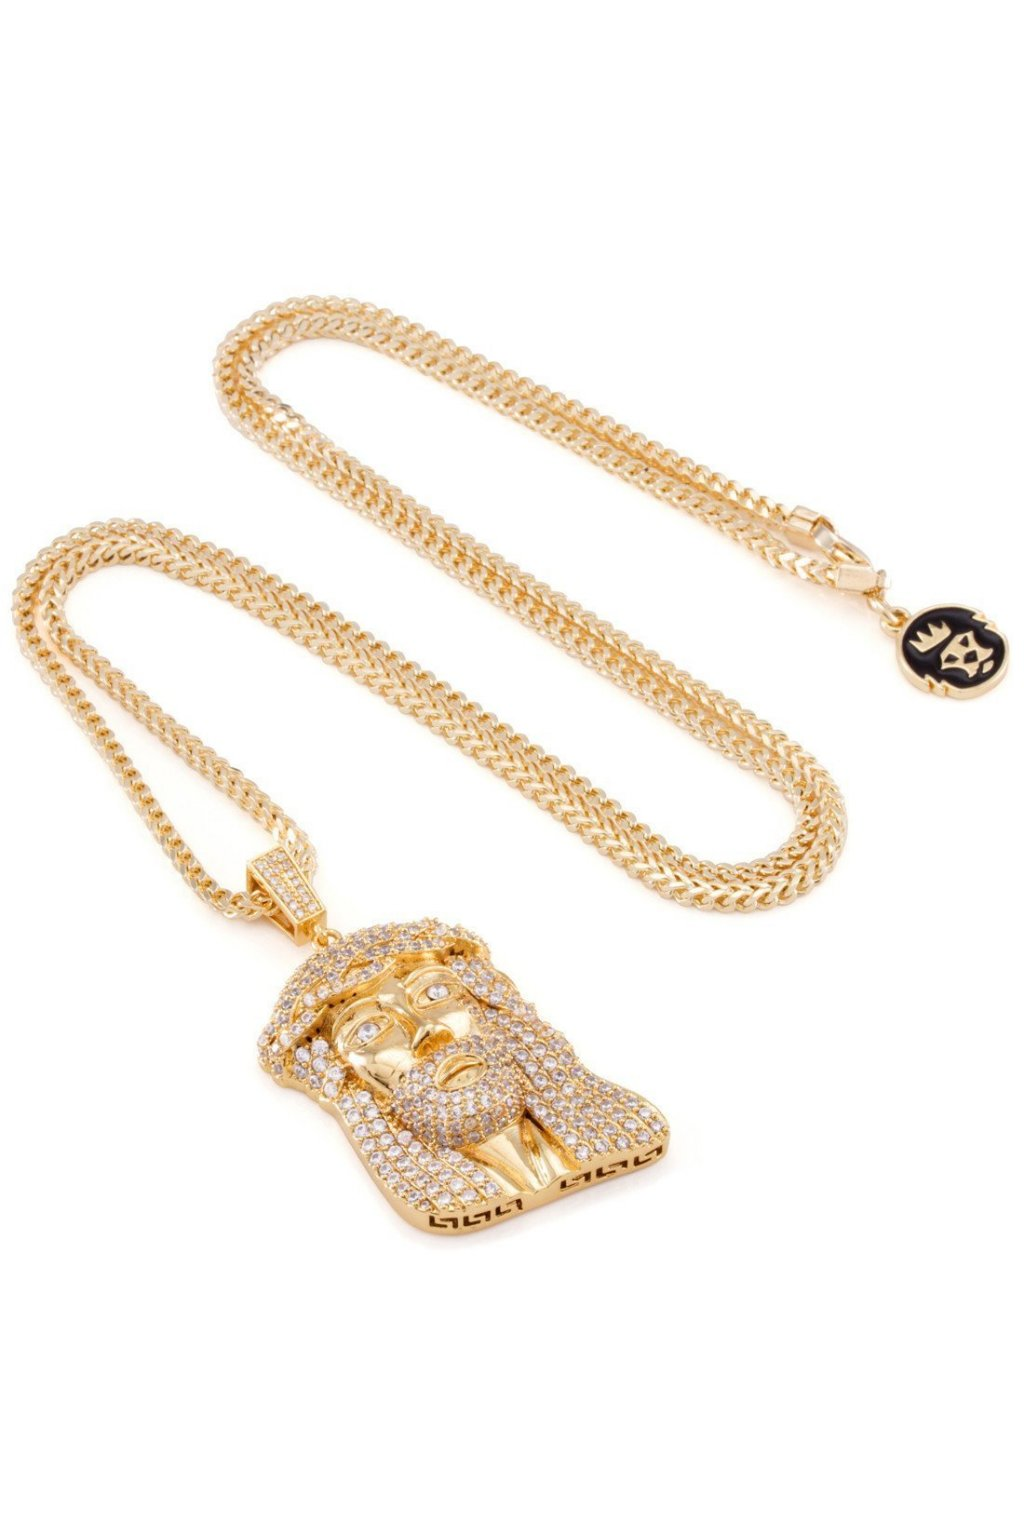 ... NKX10779 King Ice 14k Yellow Gold CZ Jesus Piece Necklace 2 aac619ee  2147 4891 9ae1 e82a560a8f42 · NKX10779 JesusPiece f9d1784a5ae